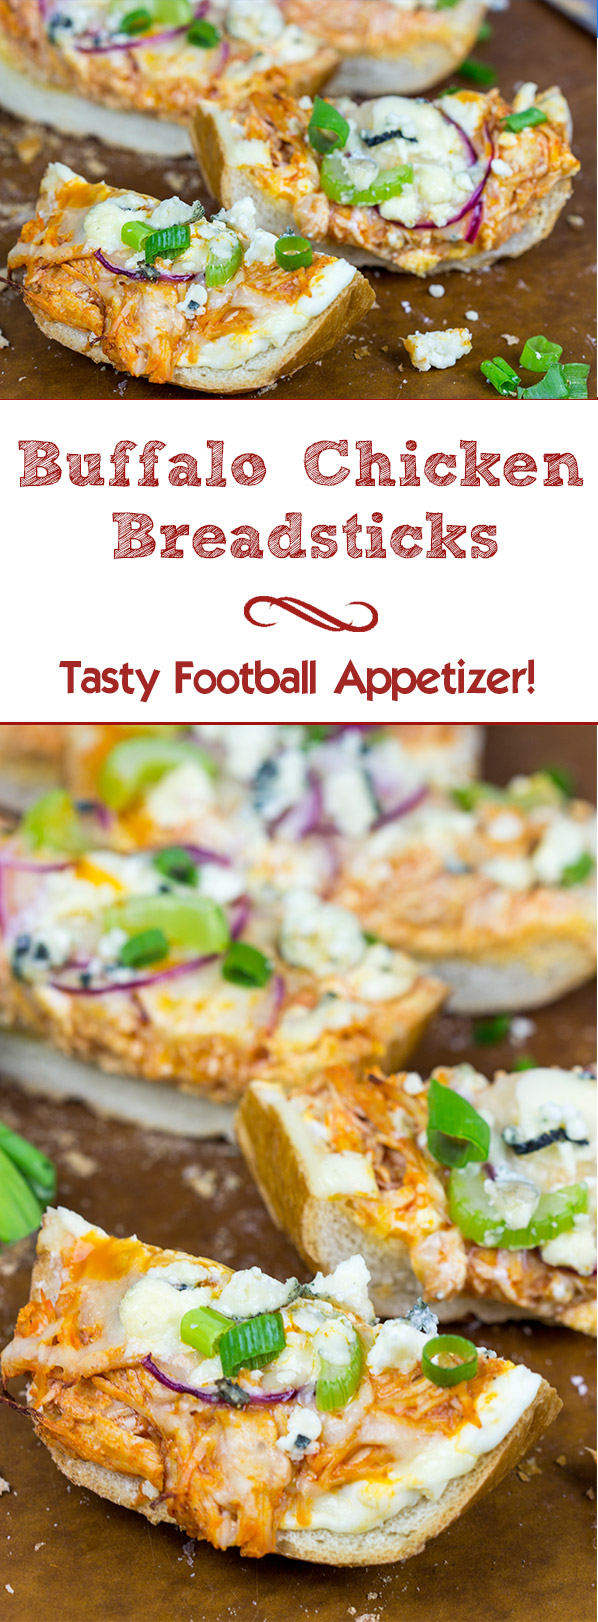 These Buffalo Chicken Breadsticks make an excellent football appetizer!  Grab a loaf of French bread and top it with spicy buffalo chicken, creamy blue cheese and melty mozzarella!